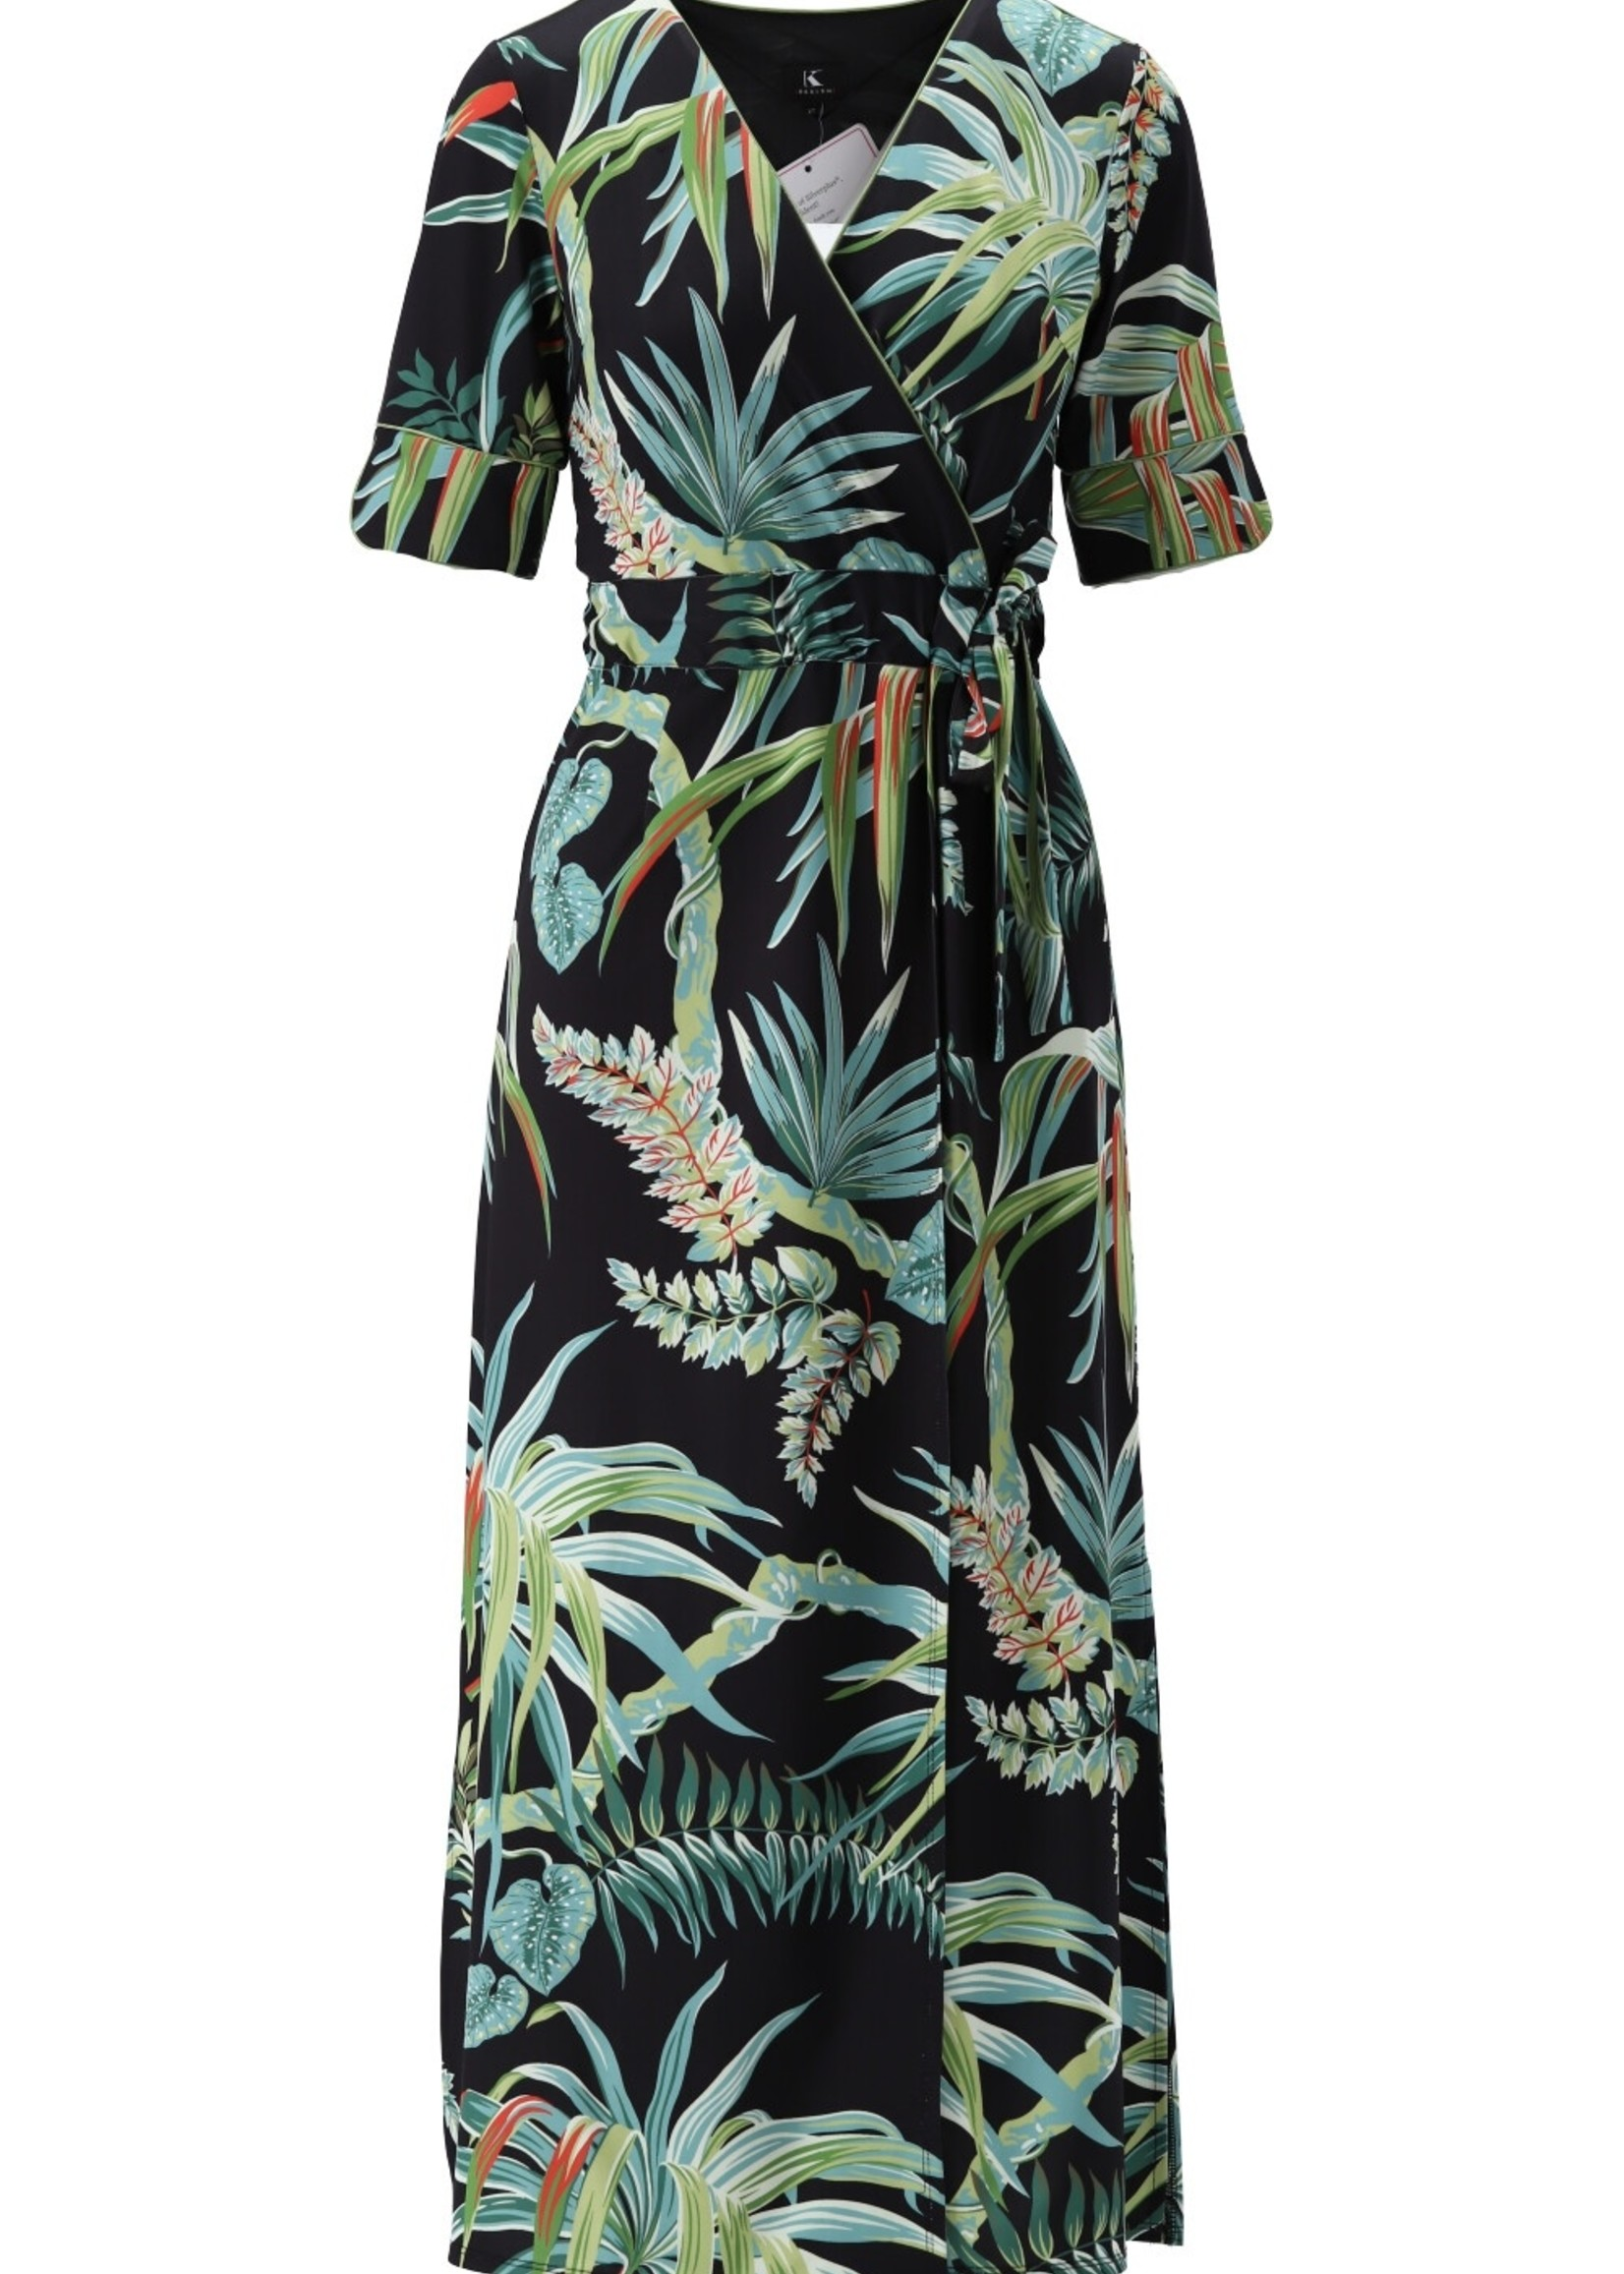 Kdesign Floral maxidress S894 P126